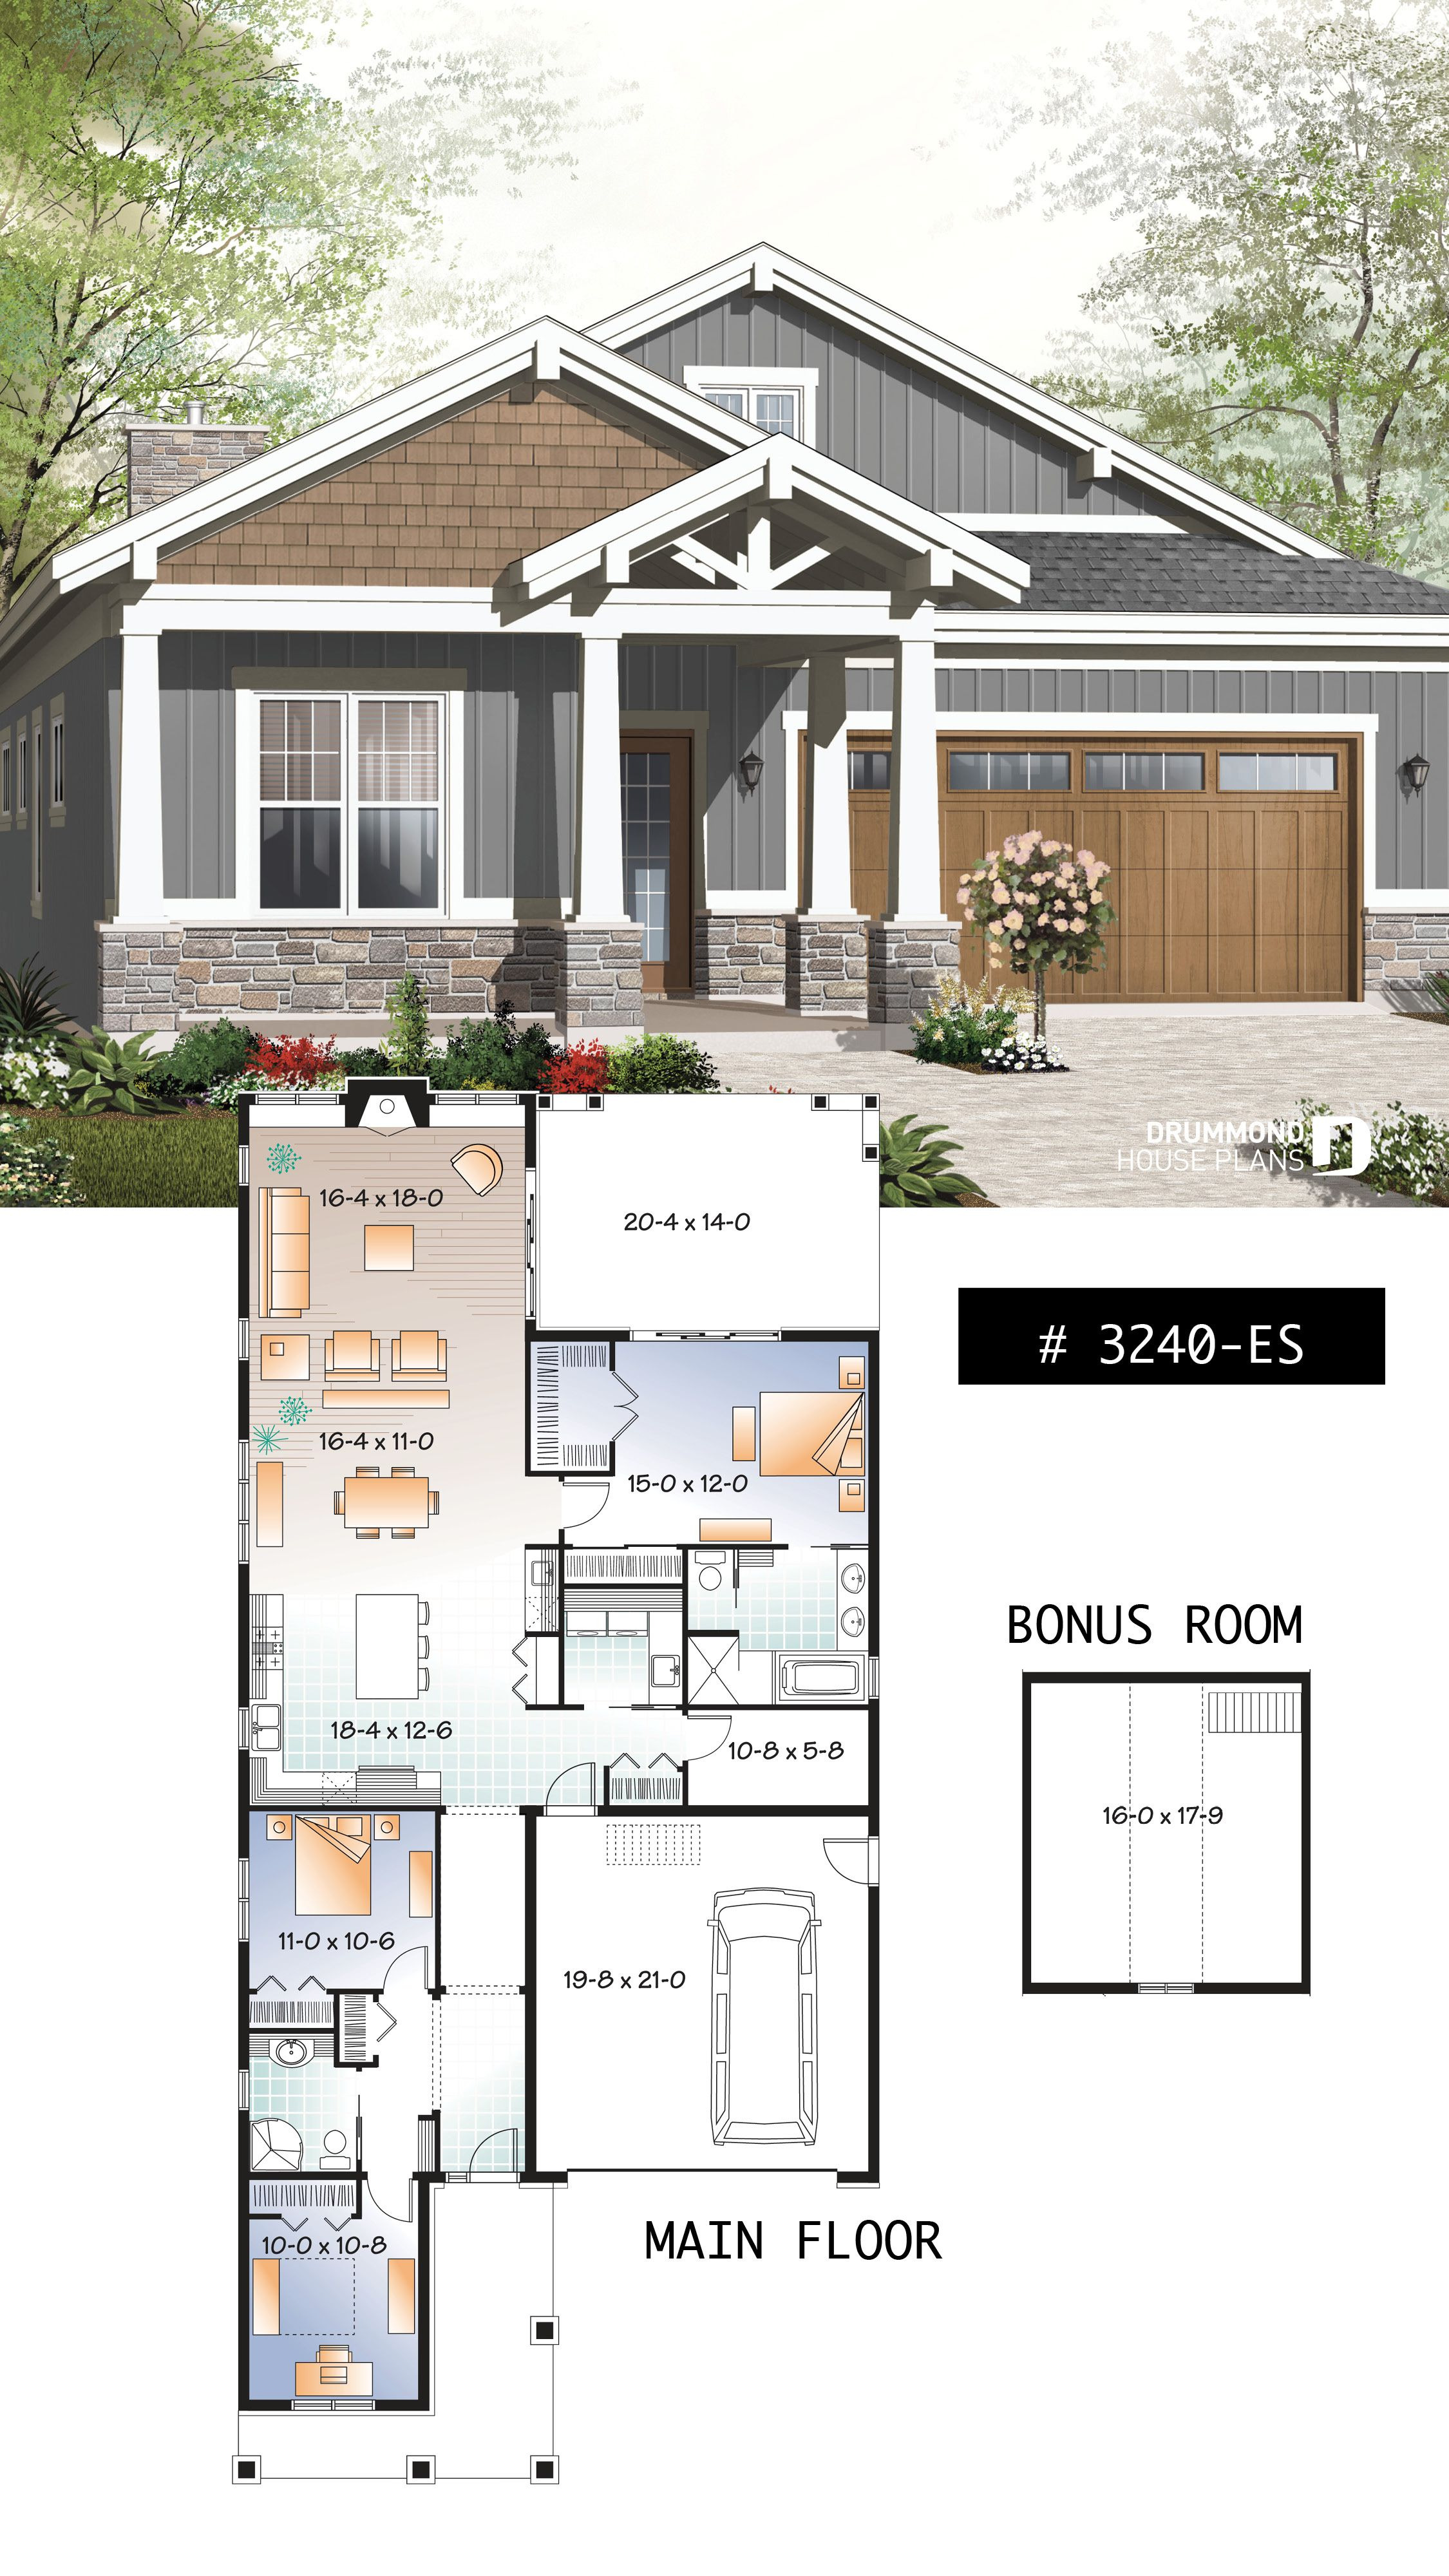 Small House Plans with Open Floor Plan Fresh House Plan northaven No 3240 Es